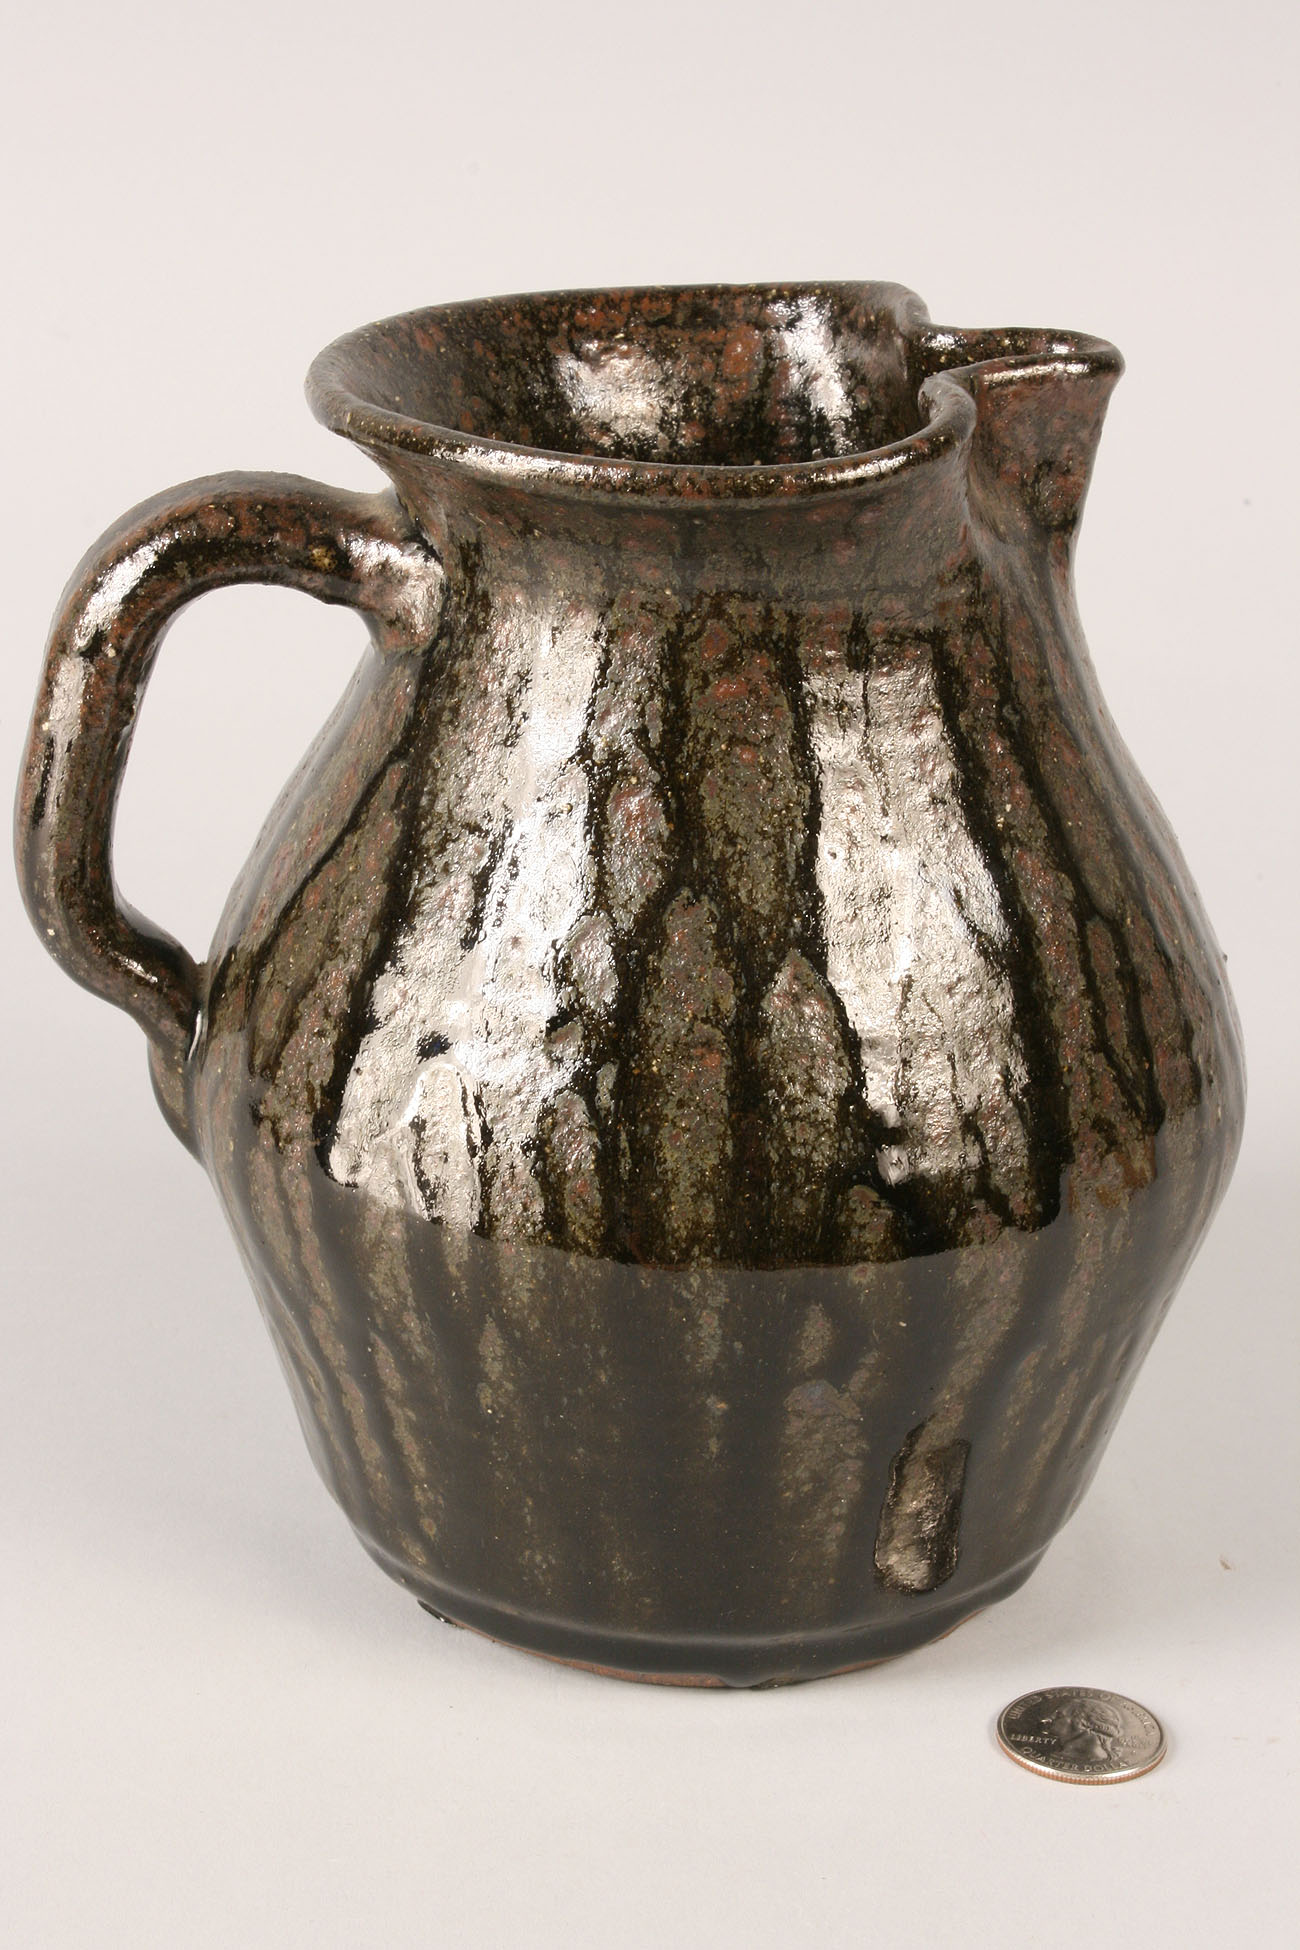 60: Lanier Meaders Pottery Pitcher